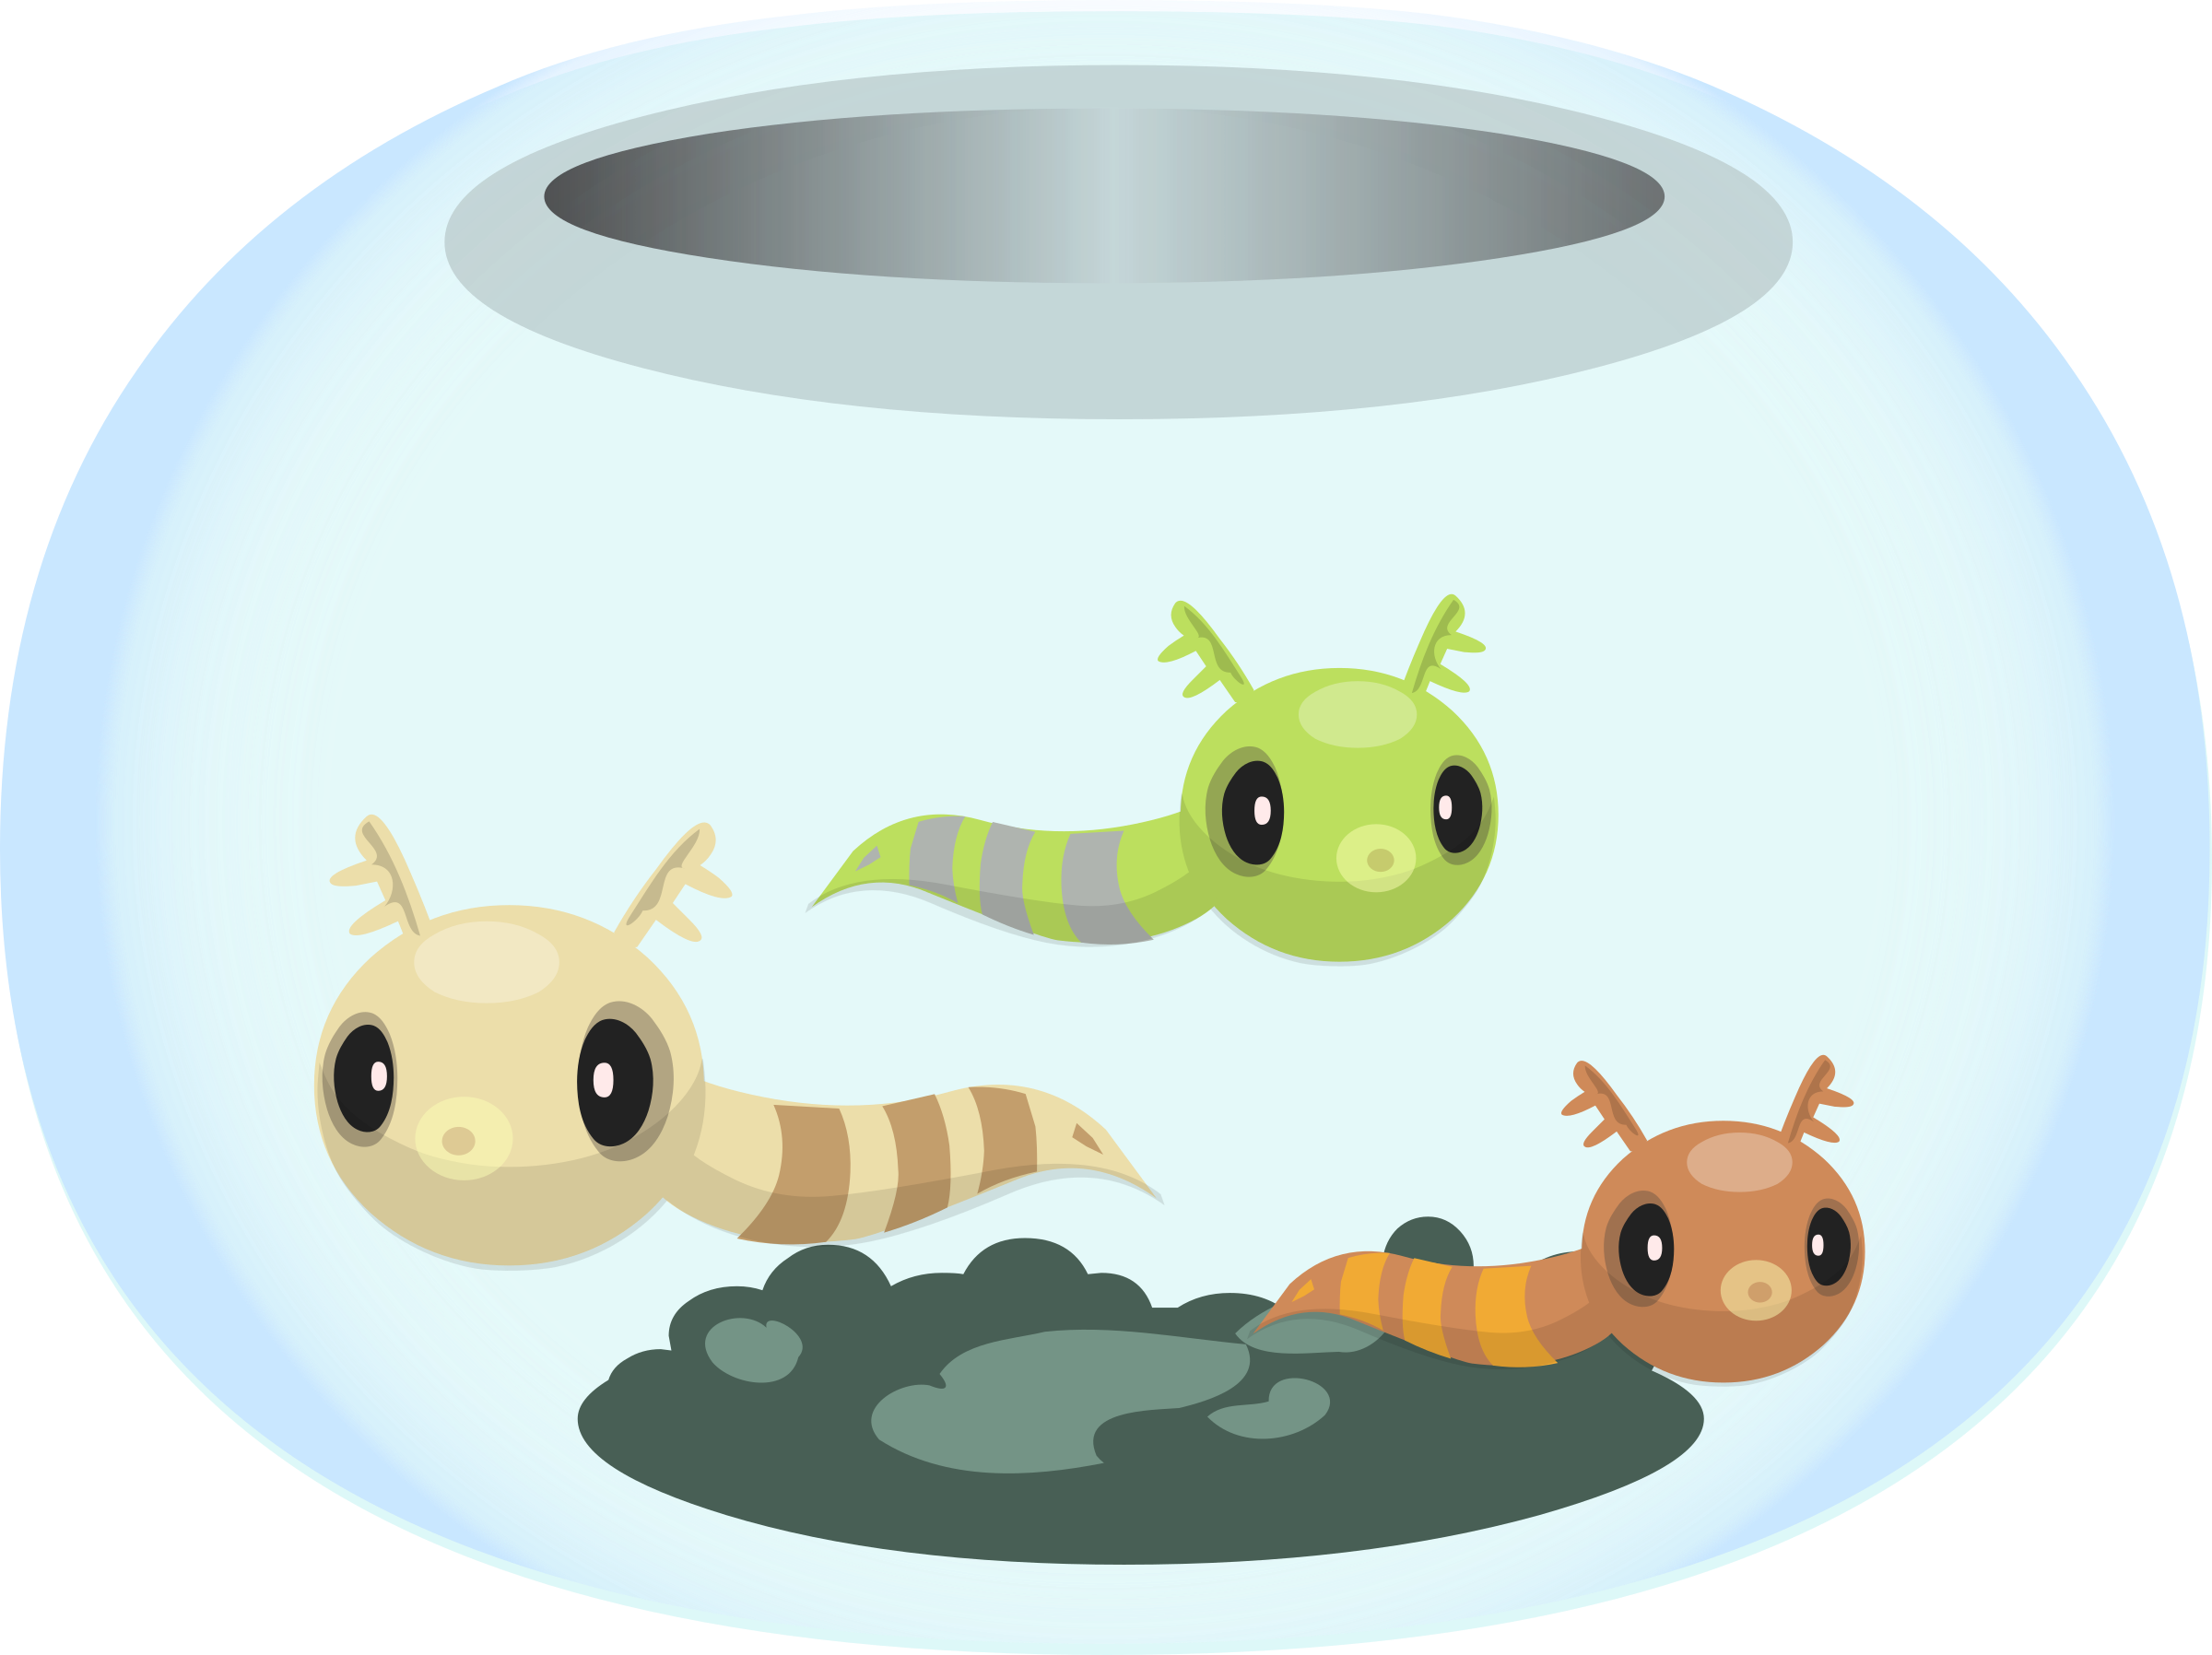 Clipart fish bowl clip freeuse Clipart - Firebog fishbowl from Glitch remix clip freeuse